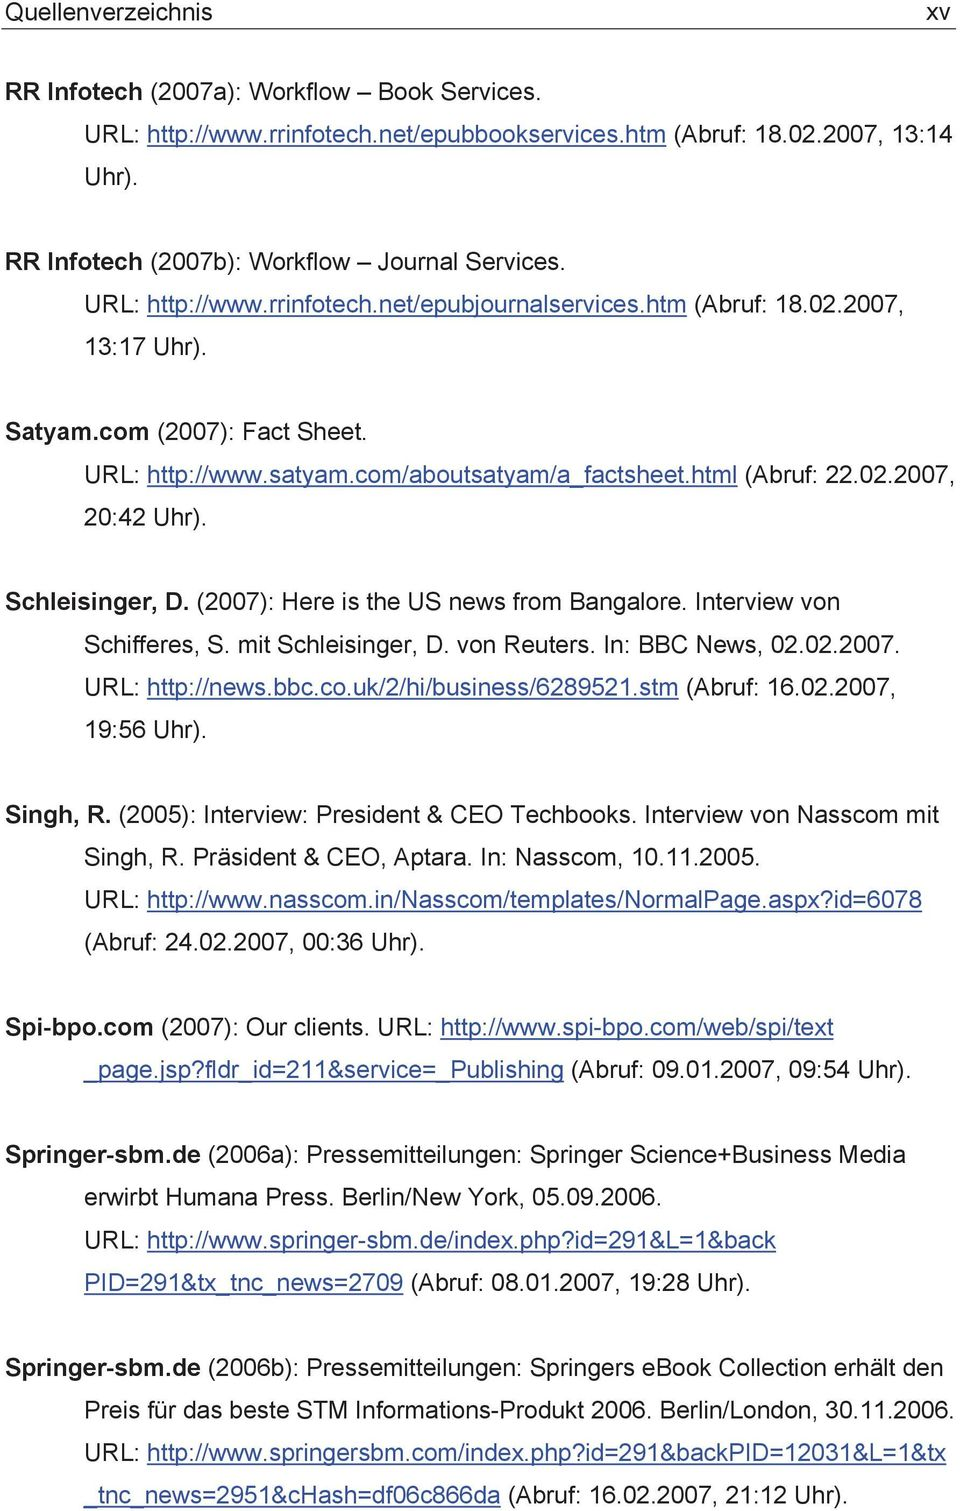 (2007): Here is the US news from Bangalore. Interview von Schifferes, S. mit Schleisinger, D. von Reuters. In: BBC News, 02.02.2007. URL: http://news.bbc.co.uk/2/hi/business/6289521.stm (Abruf: 16.02.2007, 19:56 Singh, R.